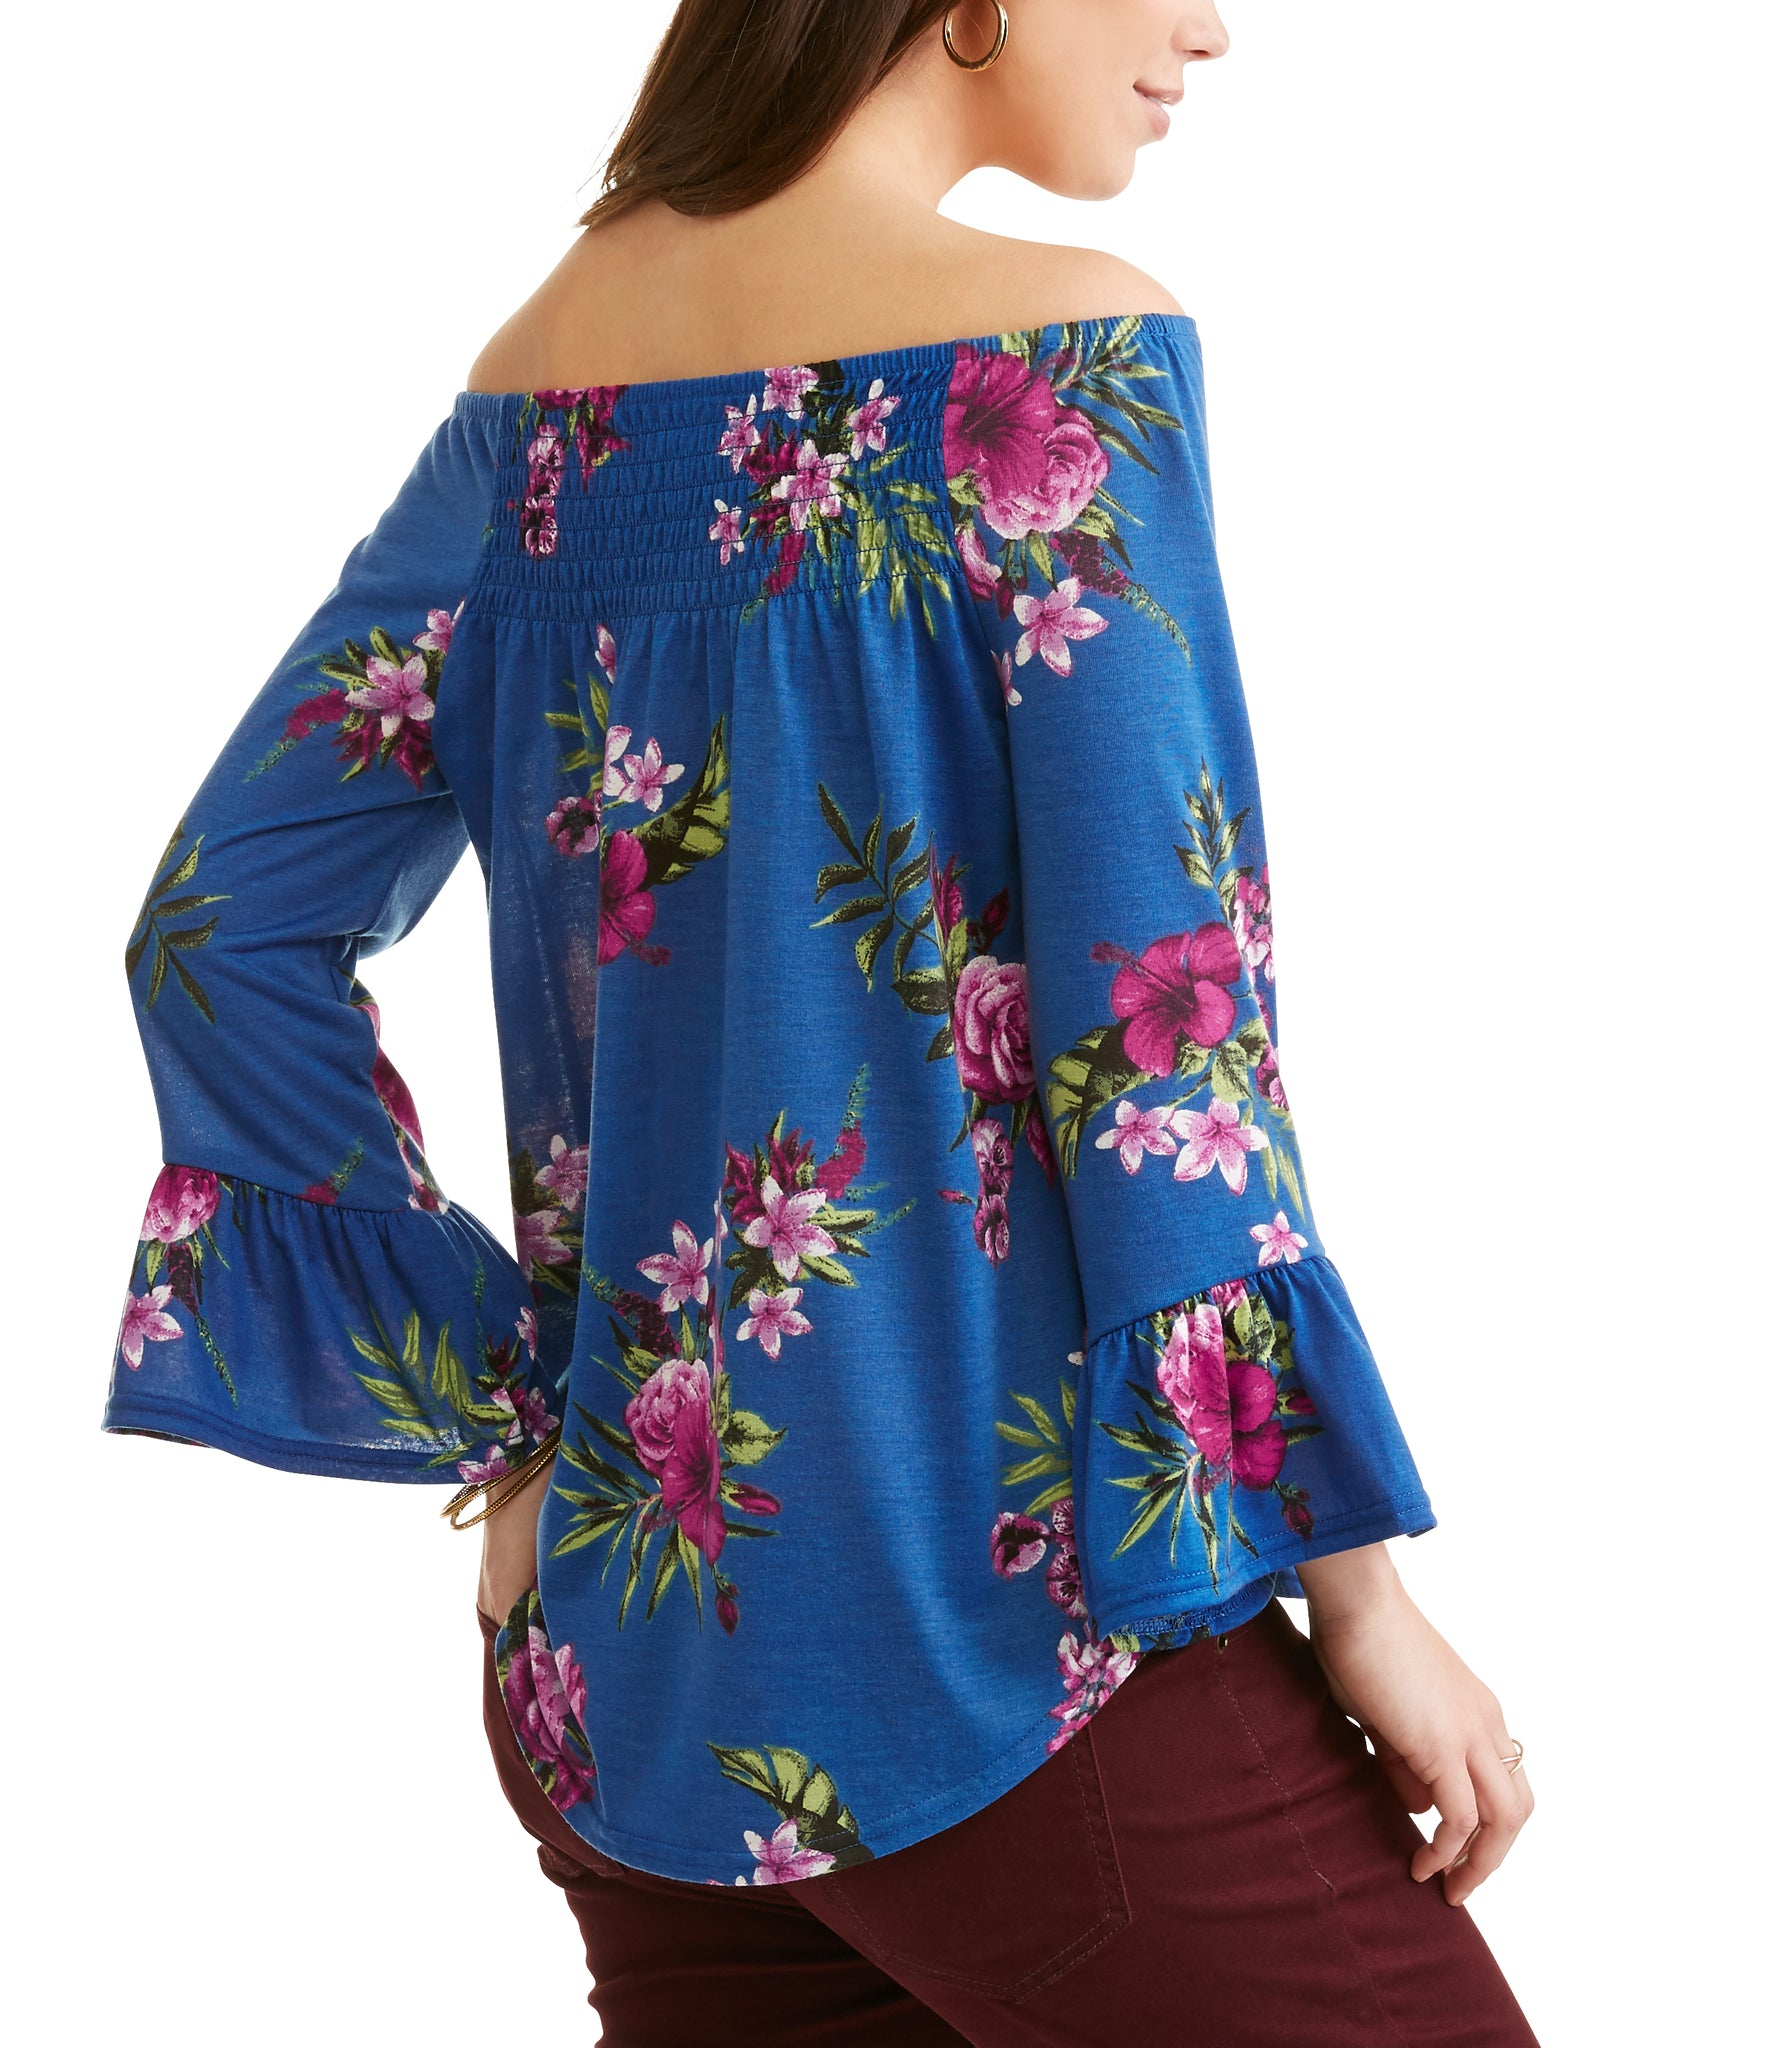 Women's Floral Print Bell Sleeve Off the Shoulder Top